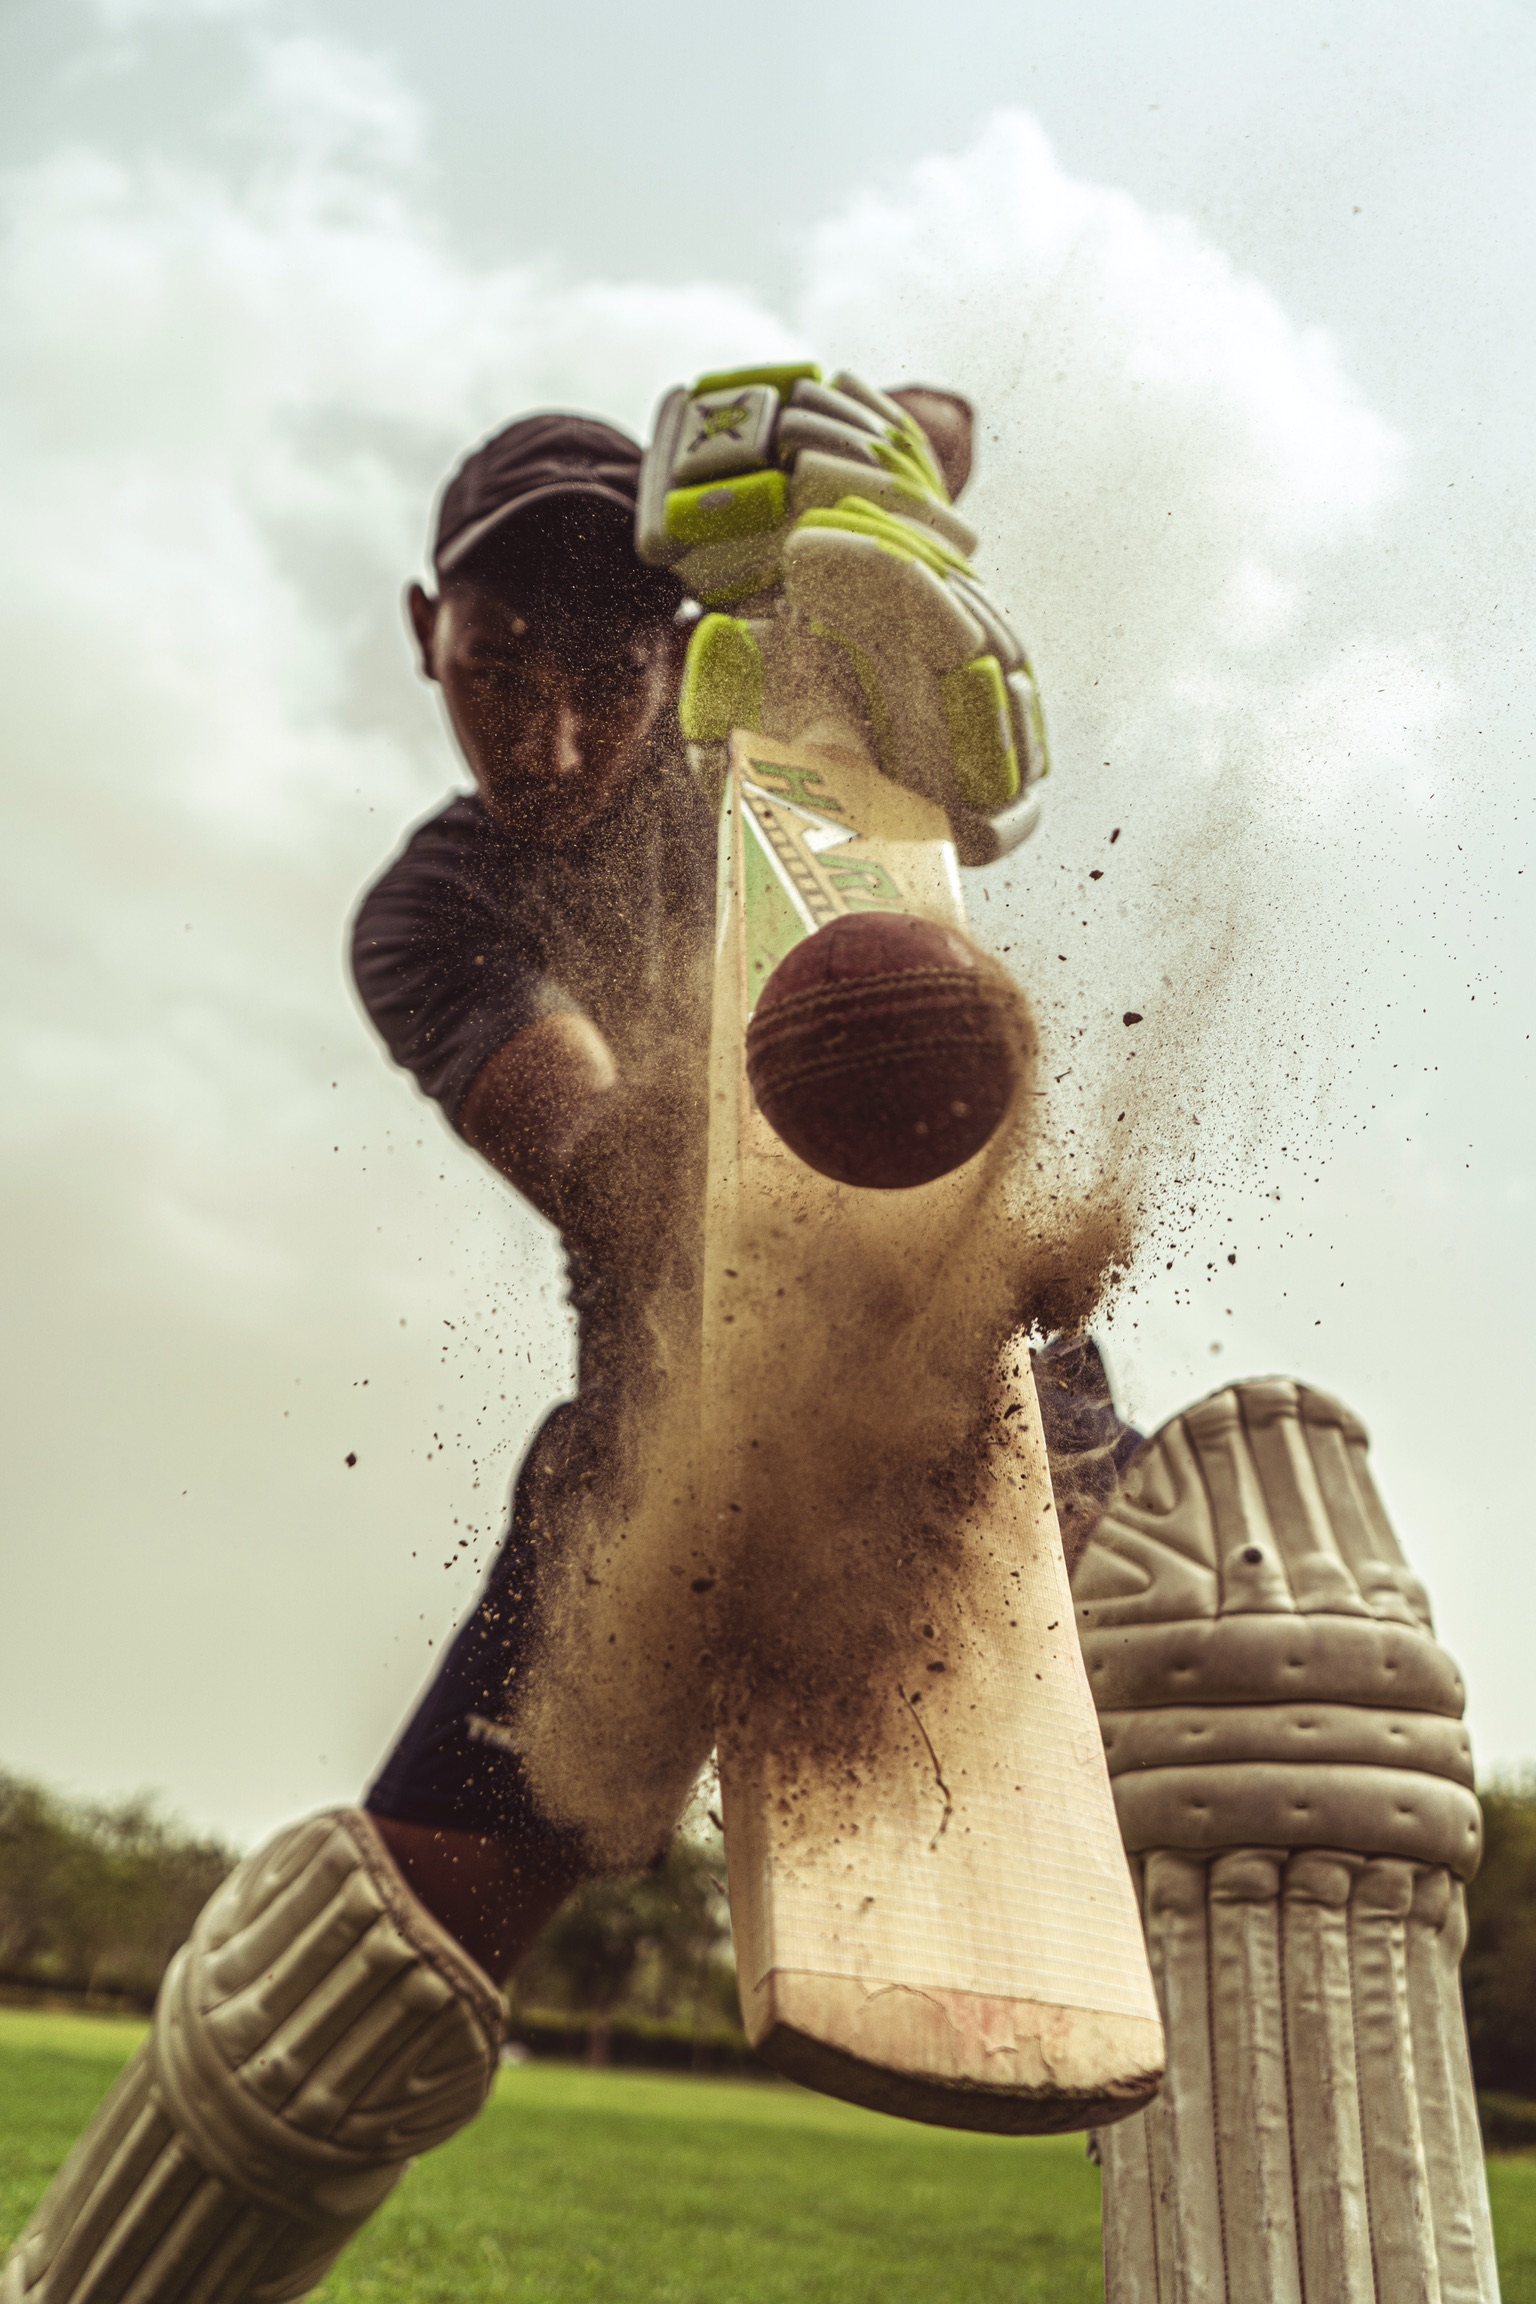 A young man stirring up dirt while hitting a cricket ball with a bat.